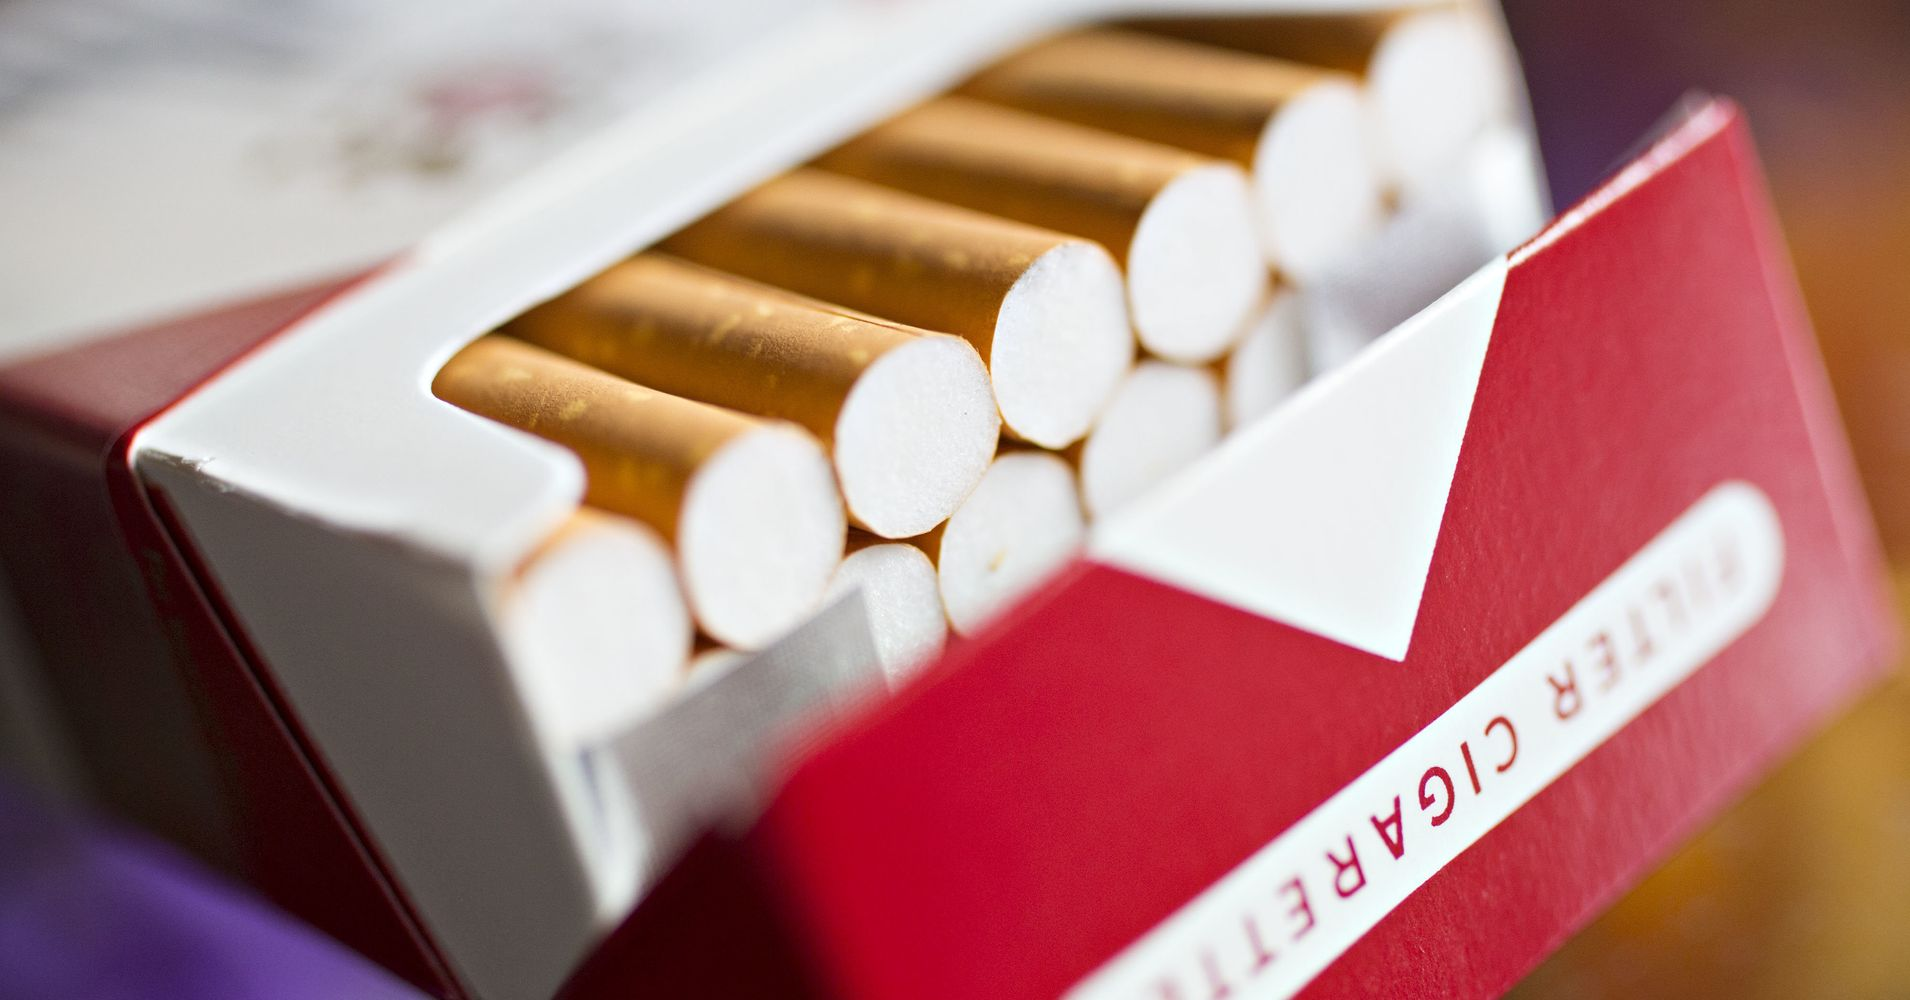 Philip Morris Says It's 'Trying To Give Up Cigarettes' In 2018